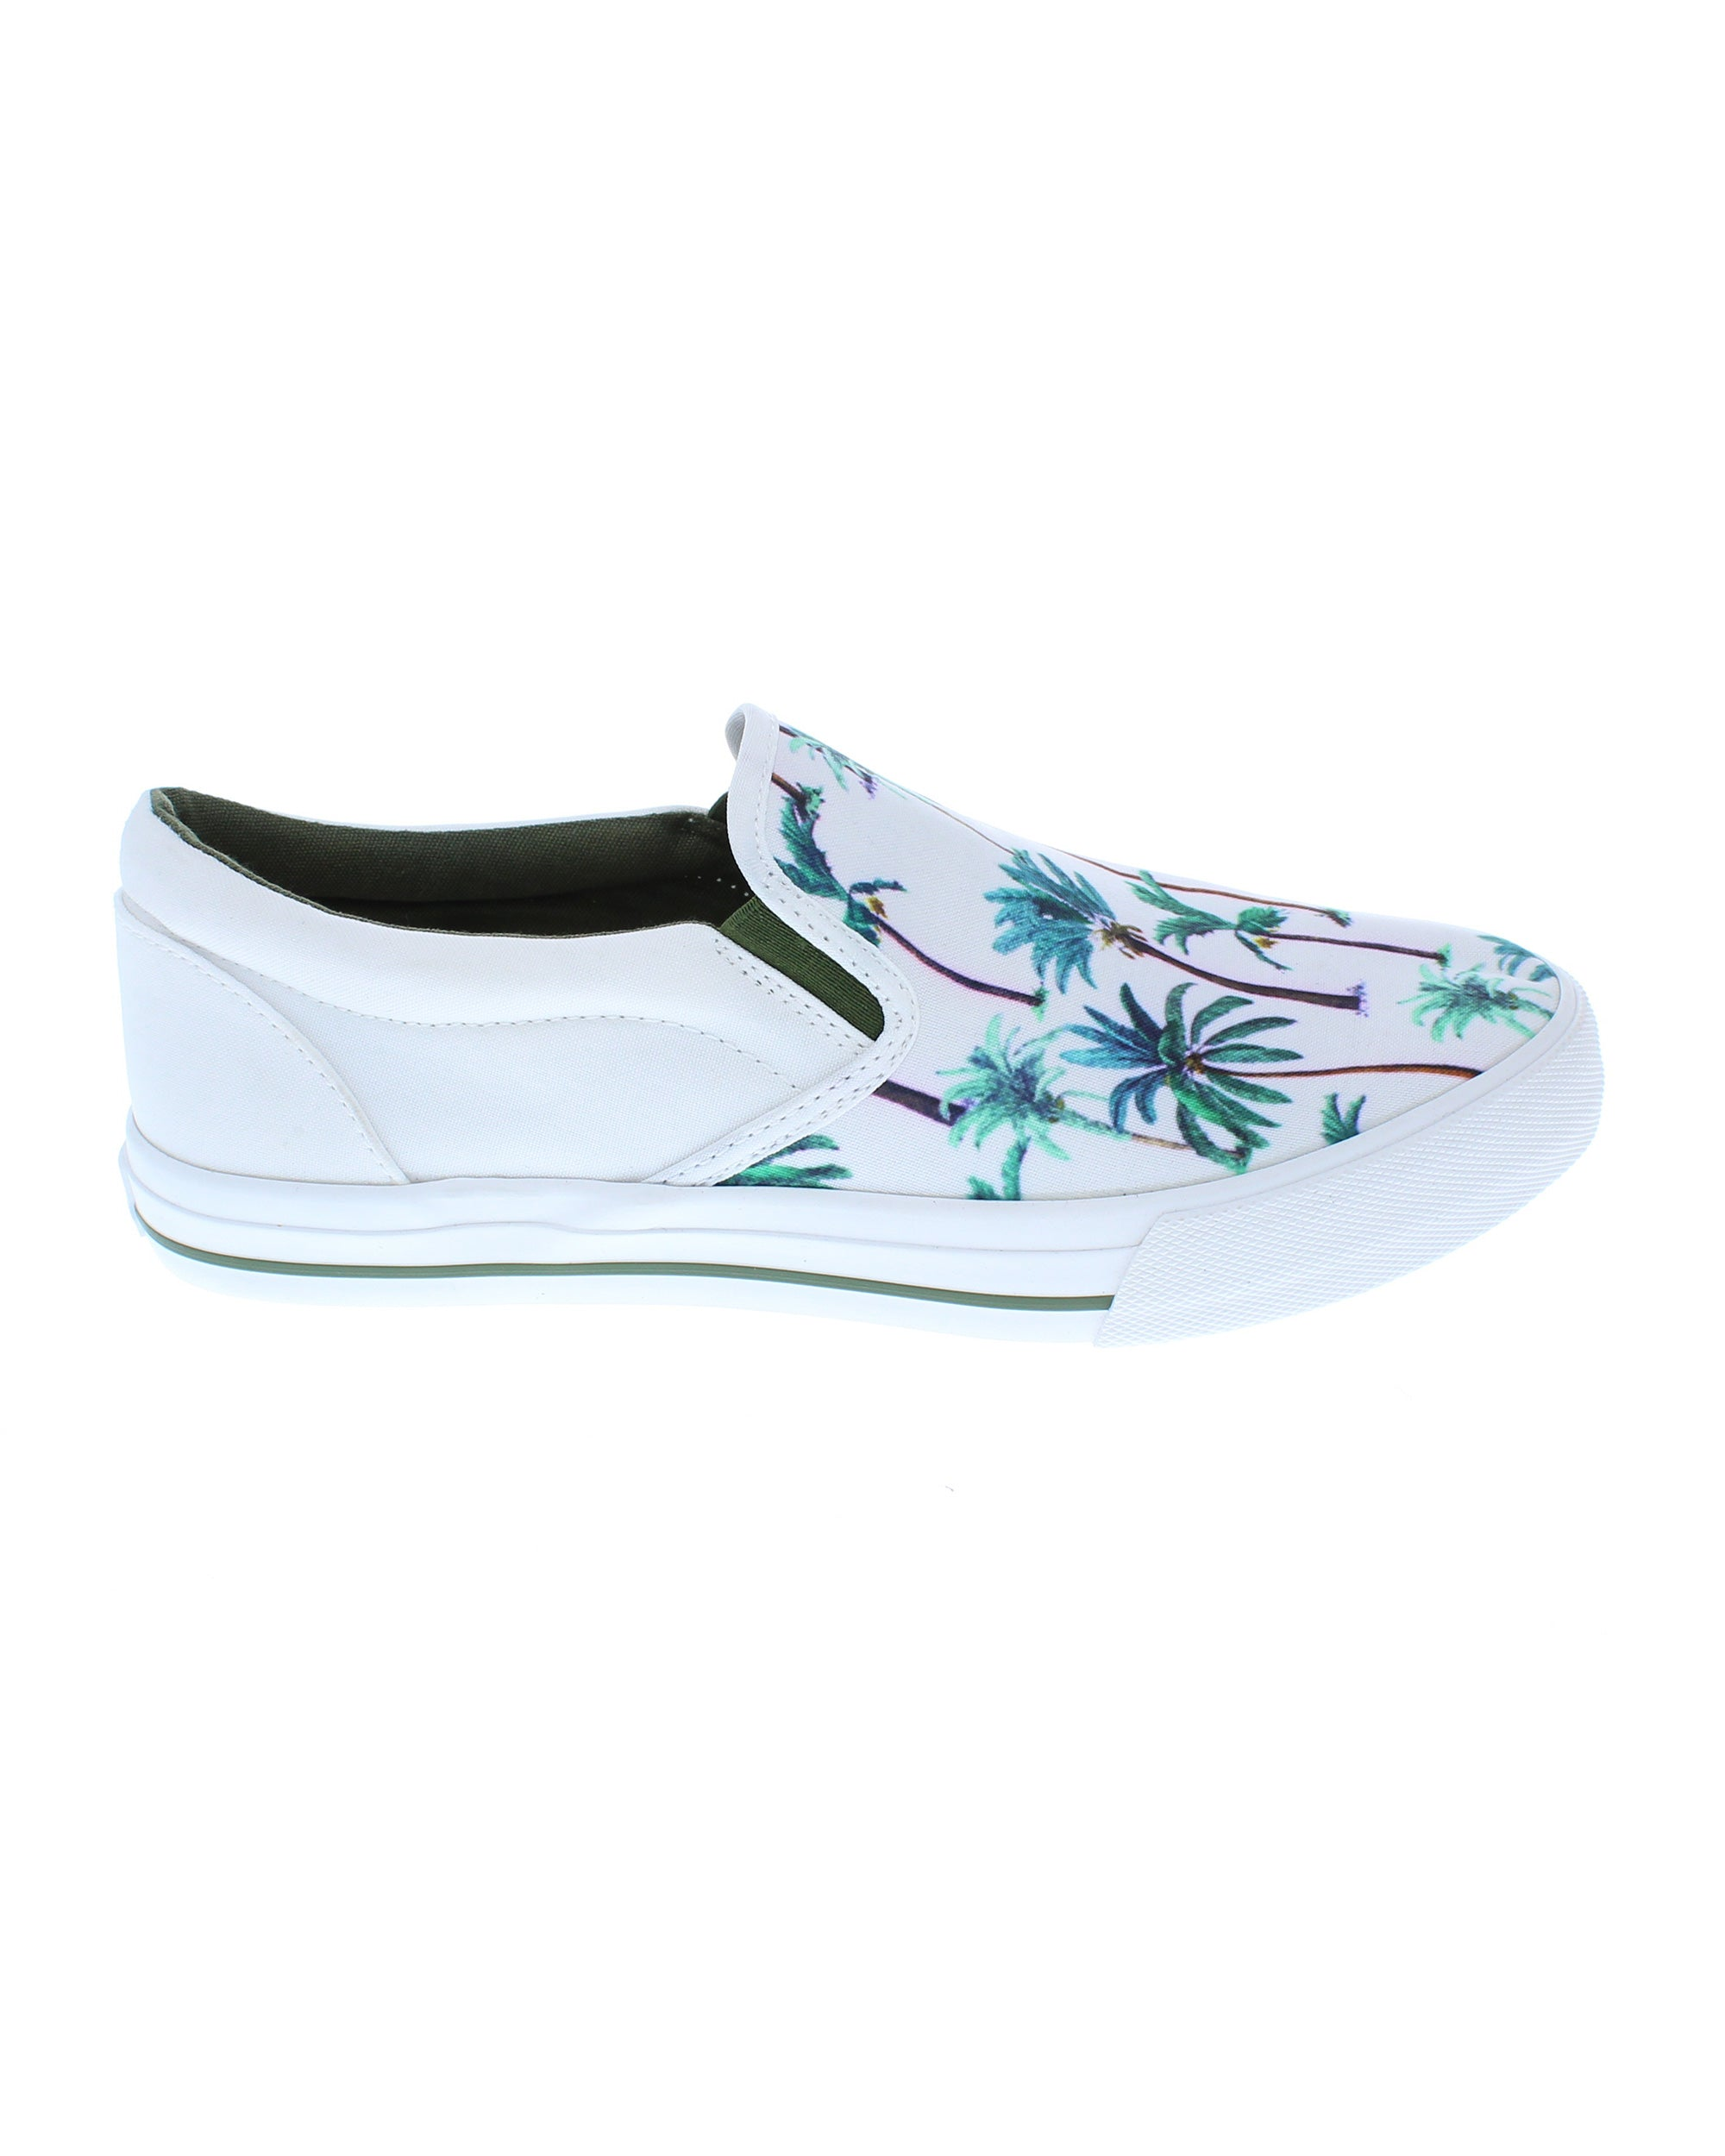 Bali Slip-On Sneakers - Tuile Palm Tree Print